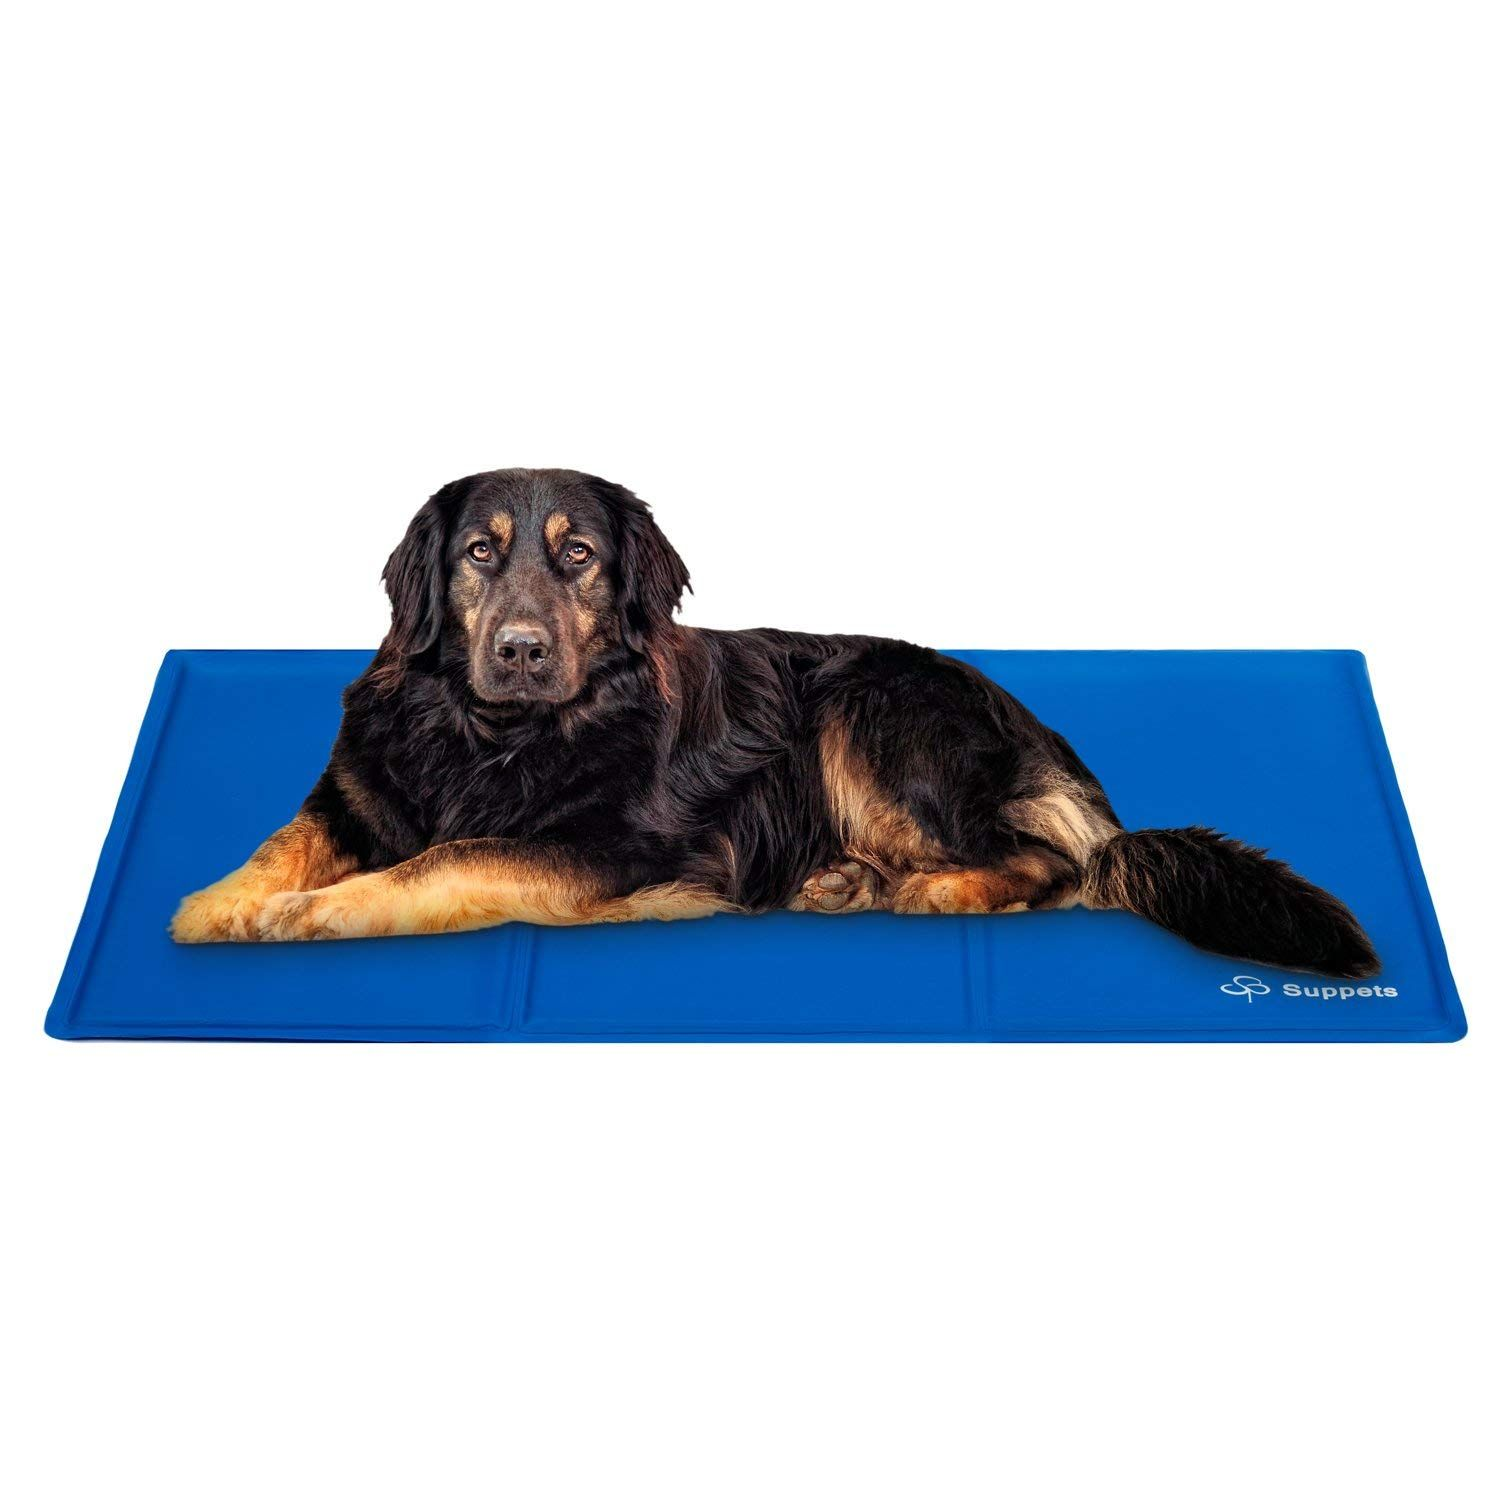 Suppets Cooling Mats Self Cooling Pet Bed Cool Pad For Dog And Cat Perfect For Floors Couches Car Seats Thank You For Viewing Our With Images Cool Pets Cat Bed Pets